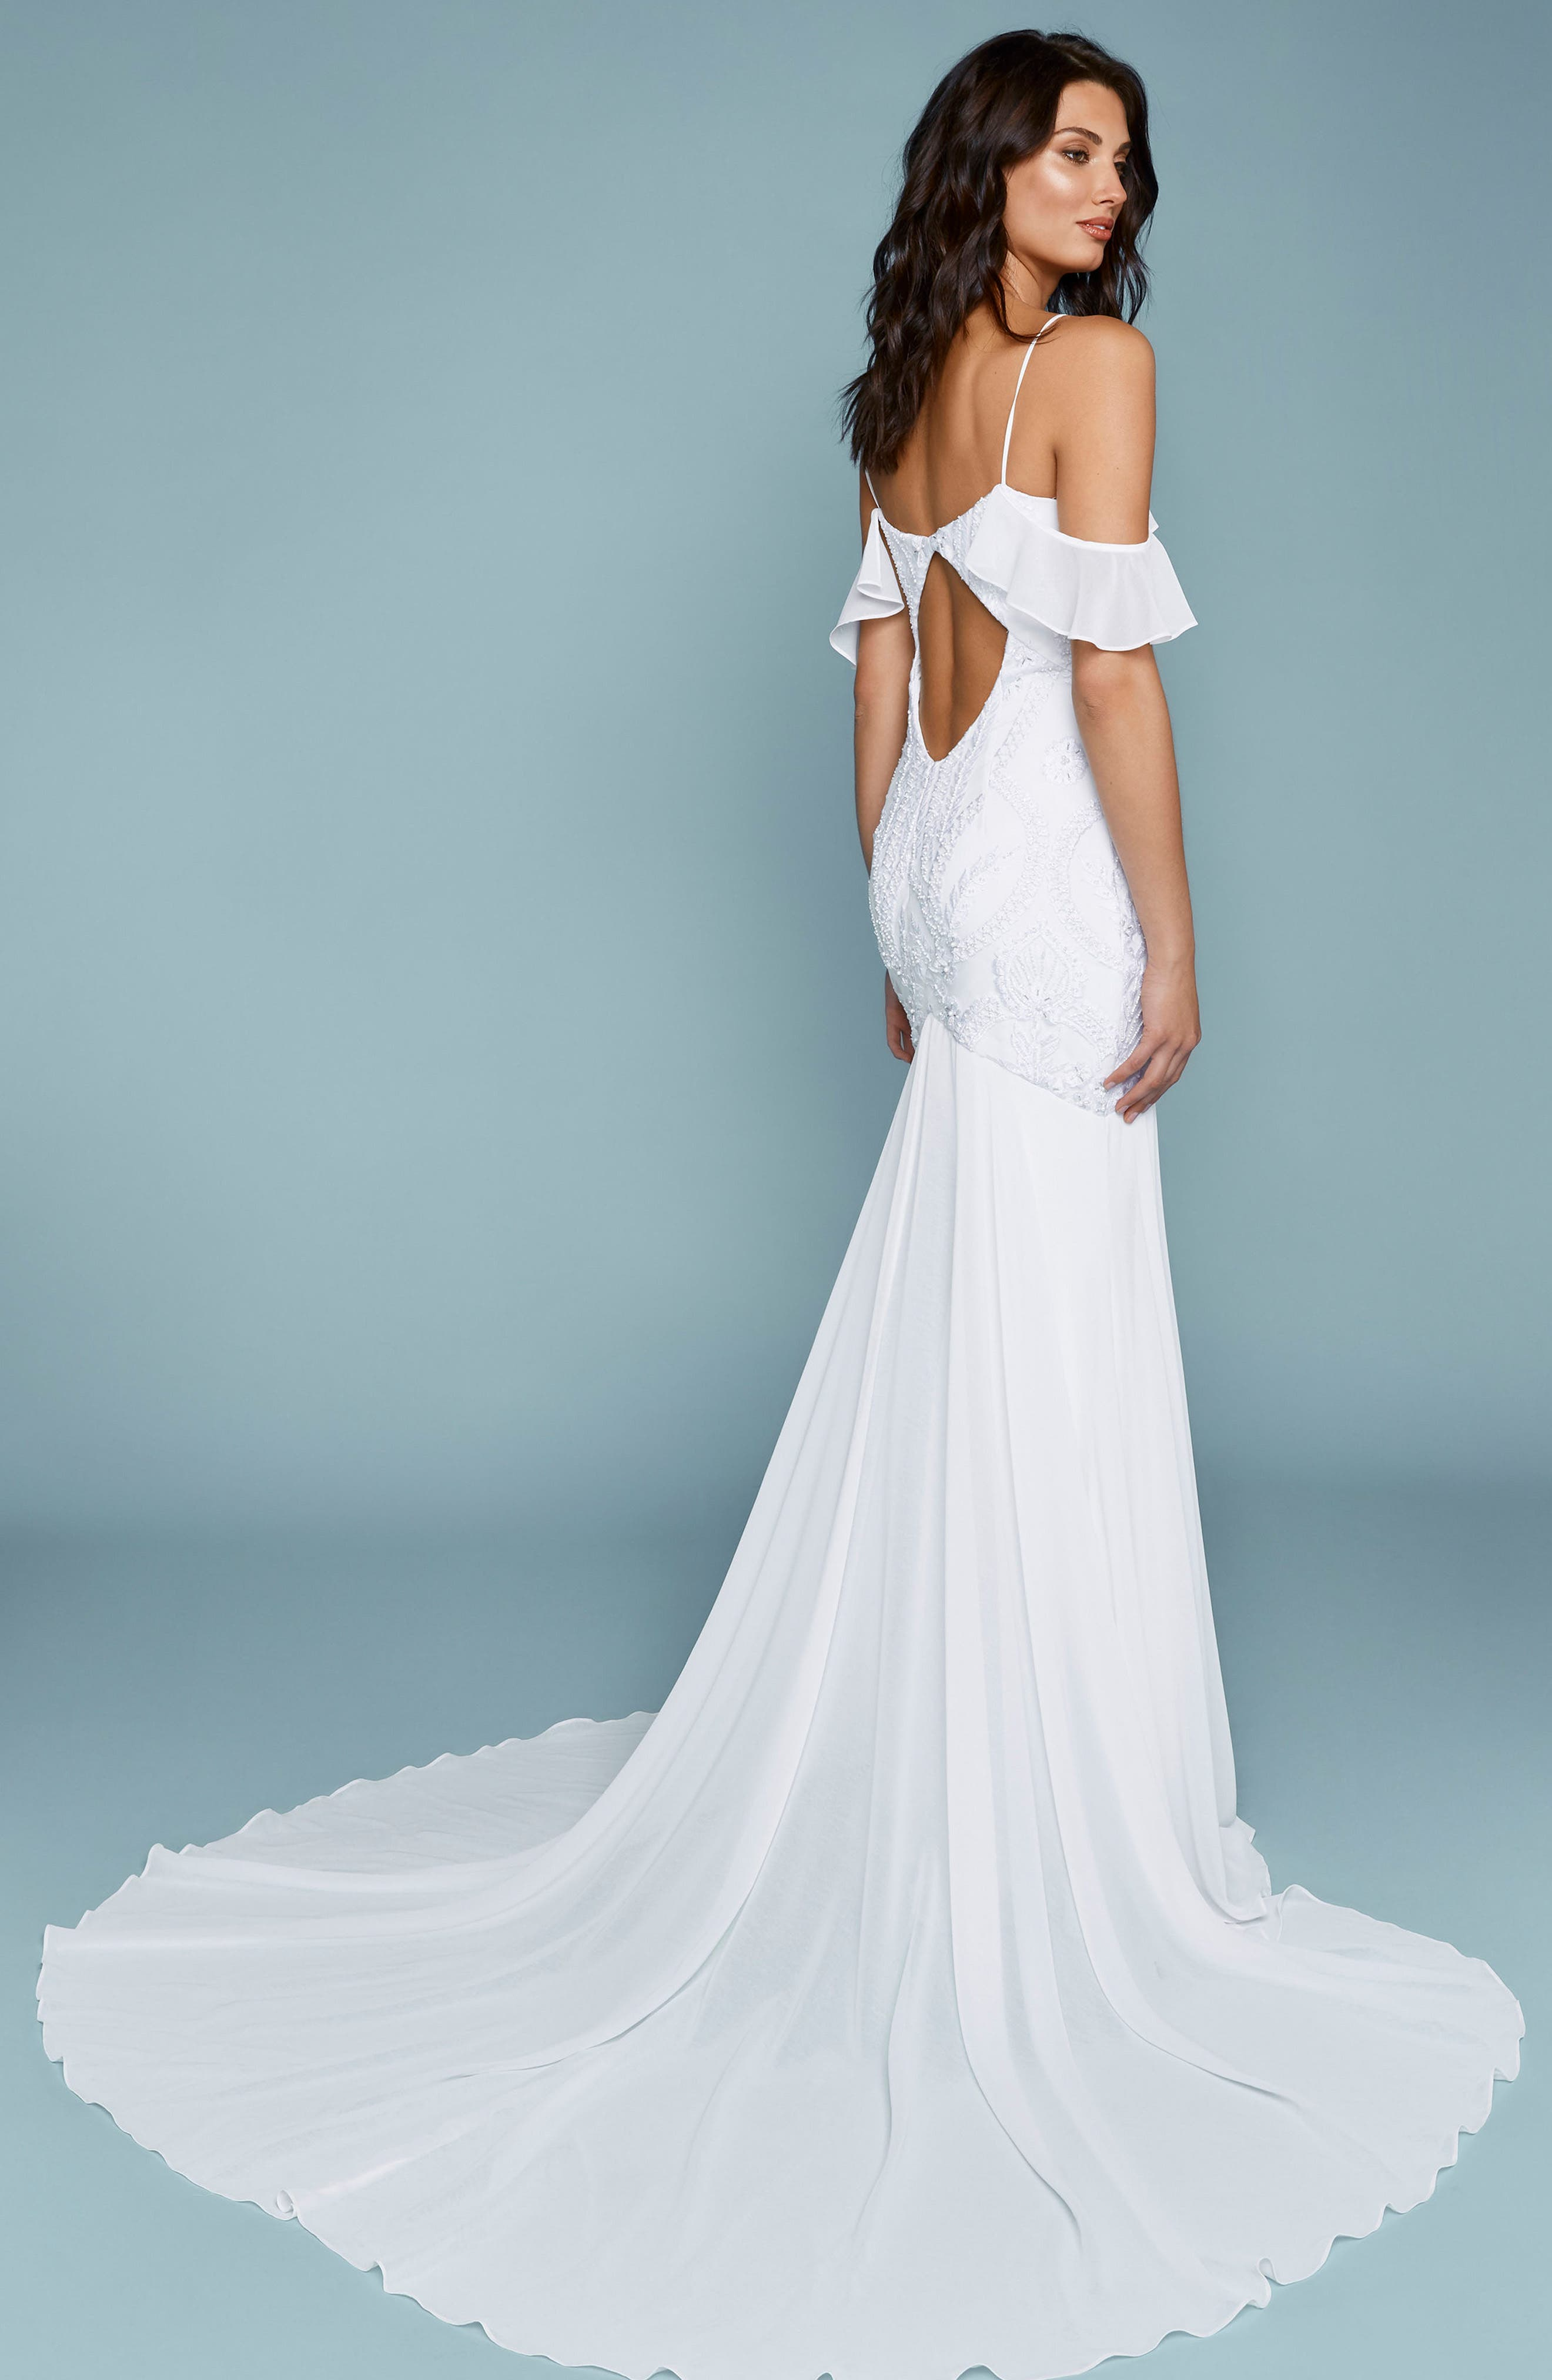 Tulum Embroidered Chiffon Off the Shoulder Mermaid Gown,                             Alternate thumbnail 2, color,                             IVORY/ IVORY